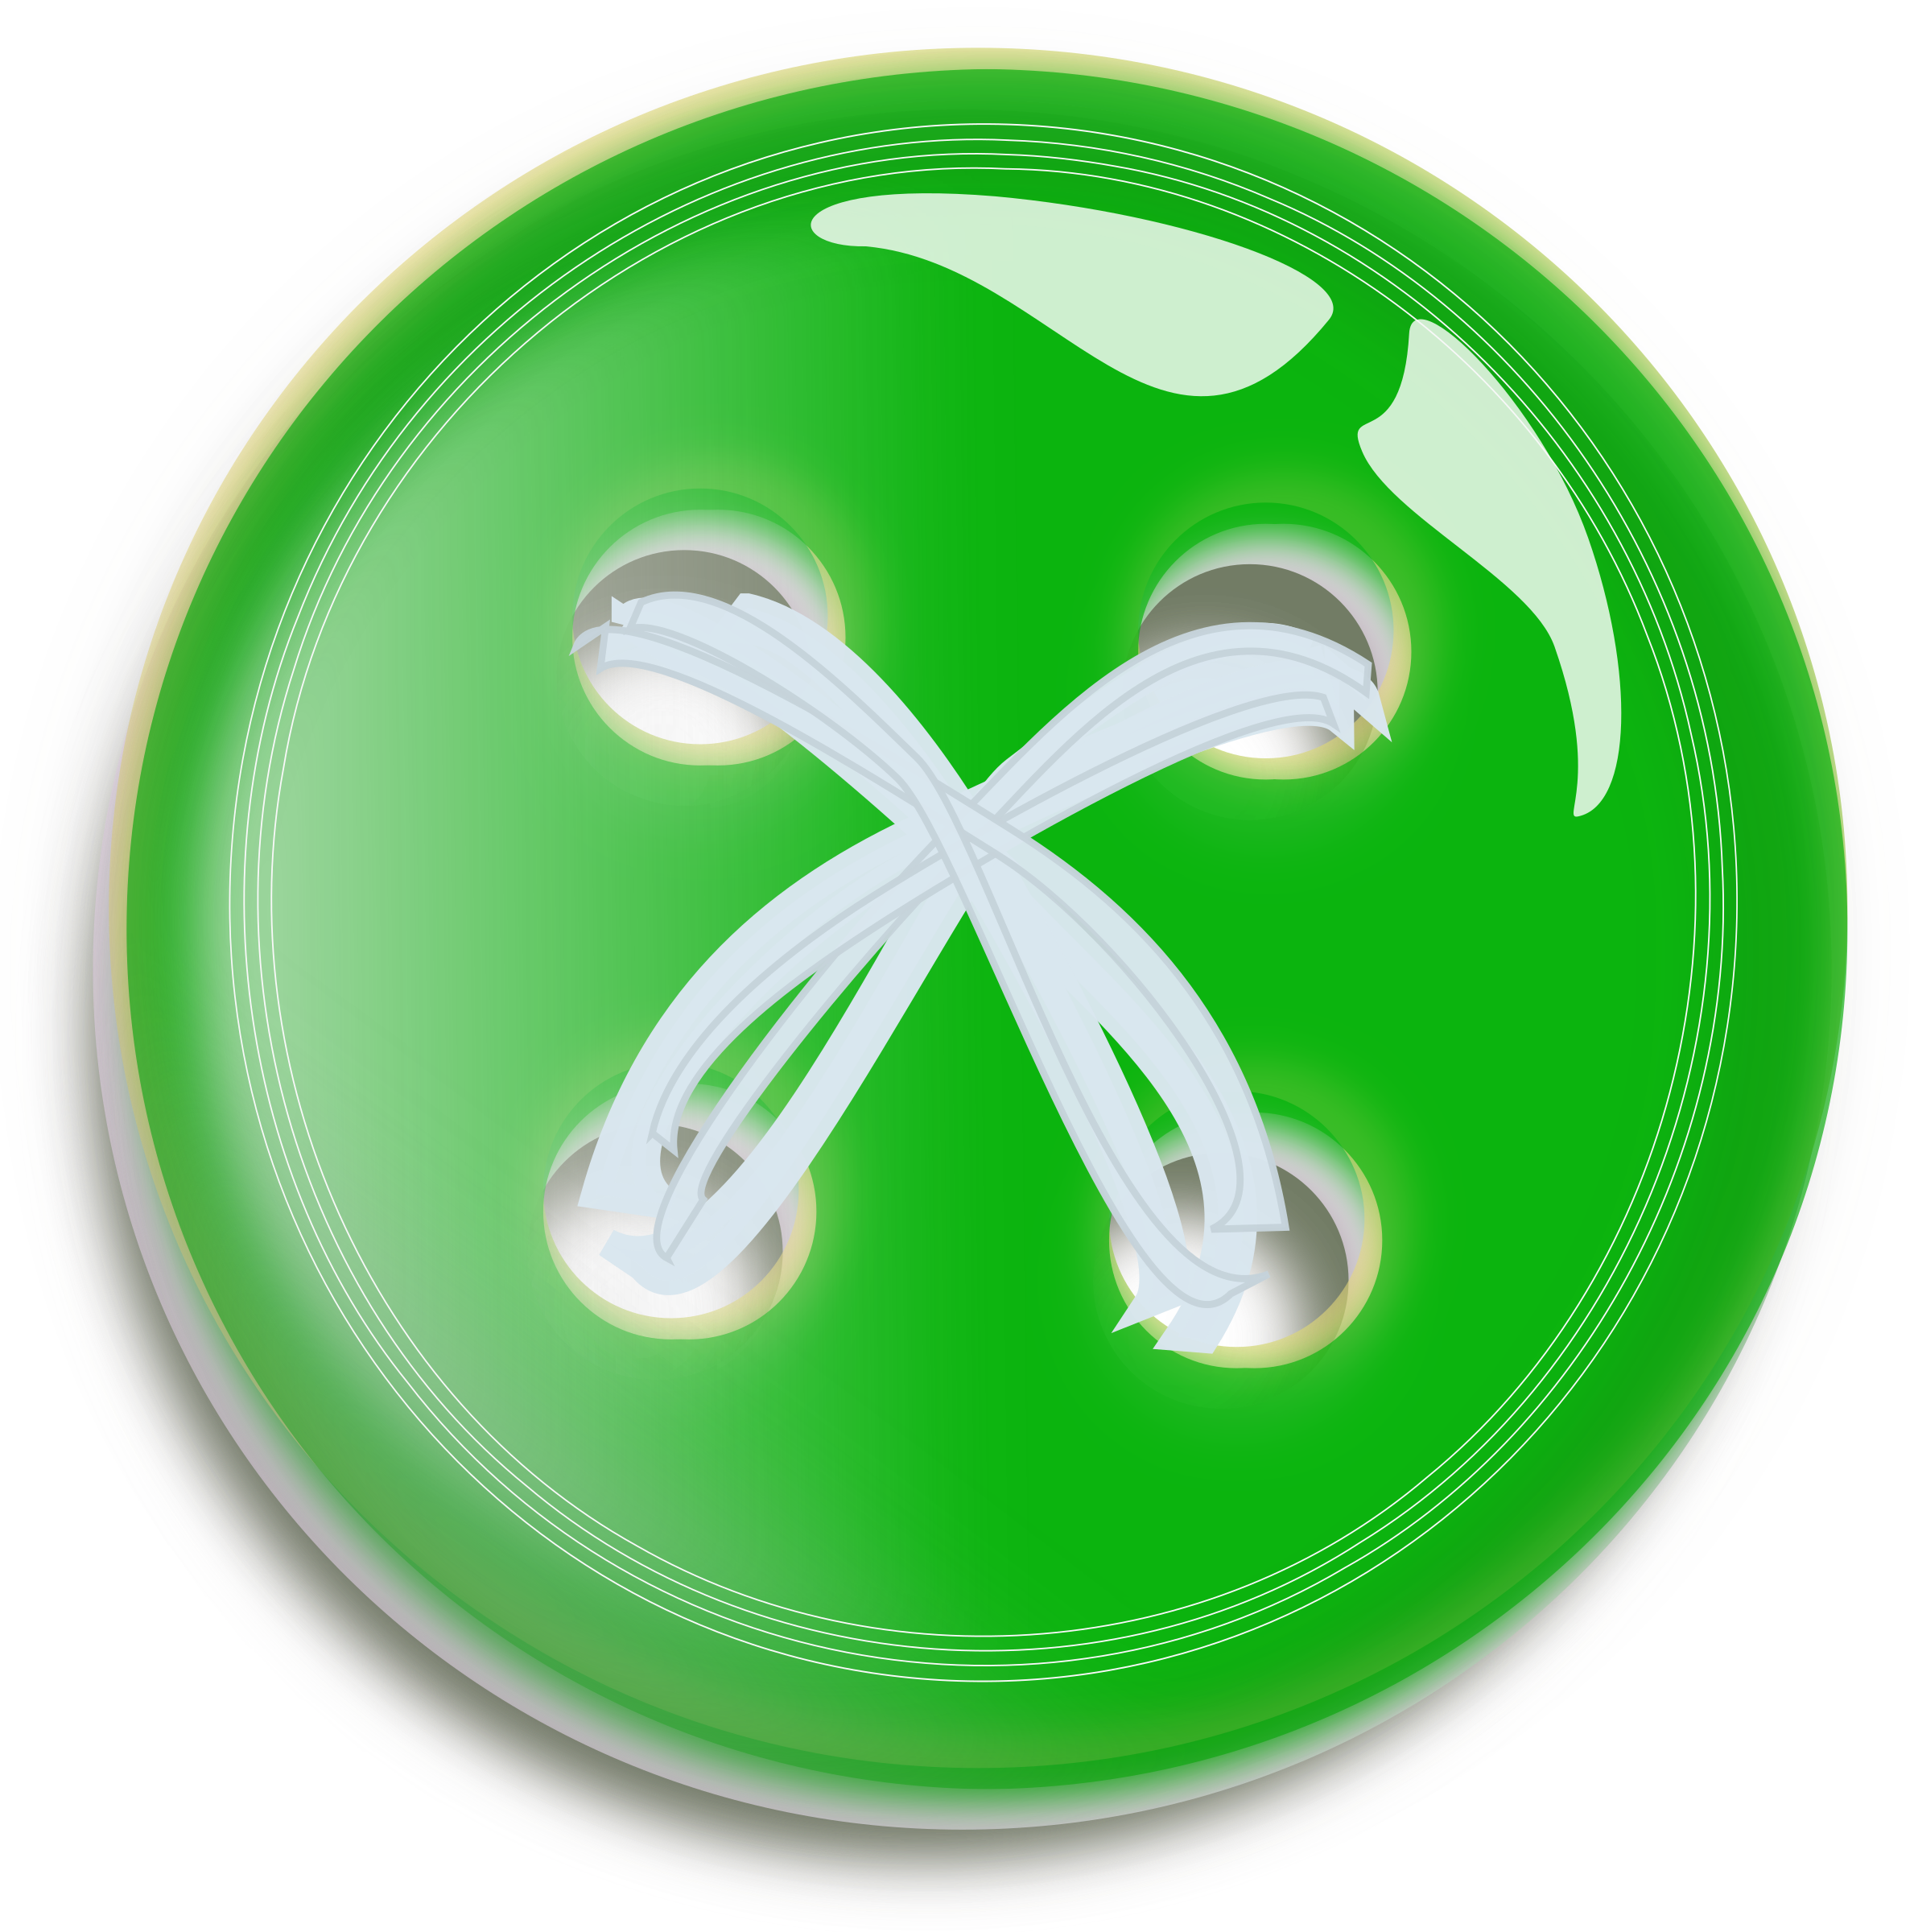 Button big image png. Clothing clipart green clothes